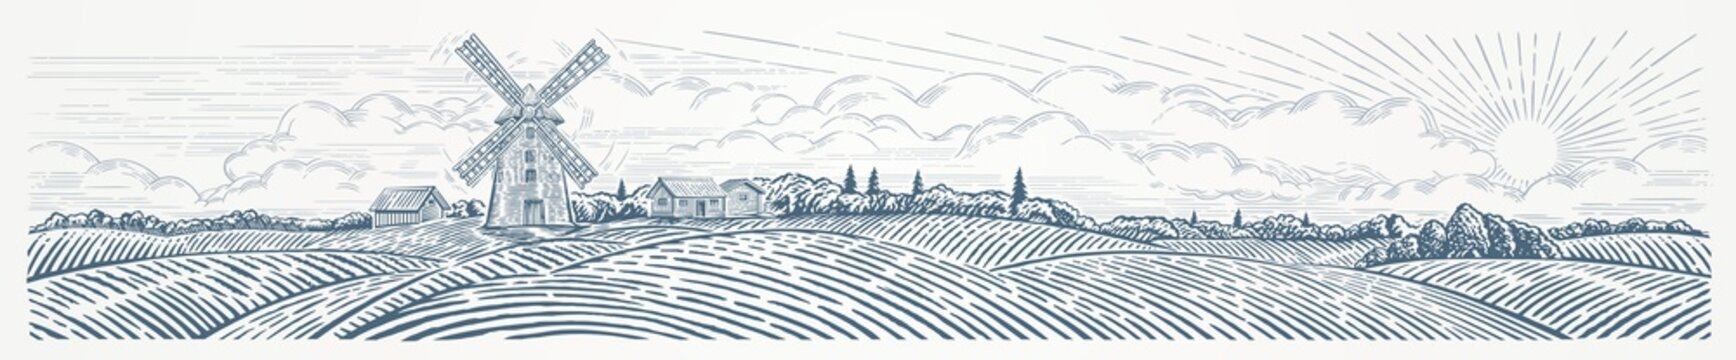 Rural landscape panoramic format with a Windmill. Hand drawn Illustration in engraving style.